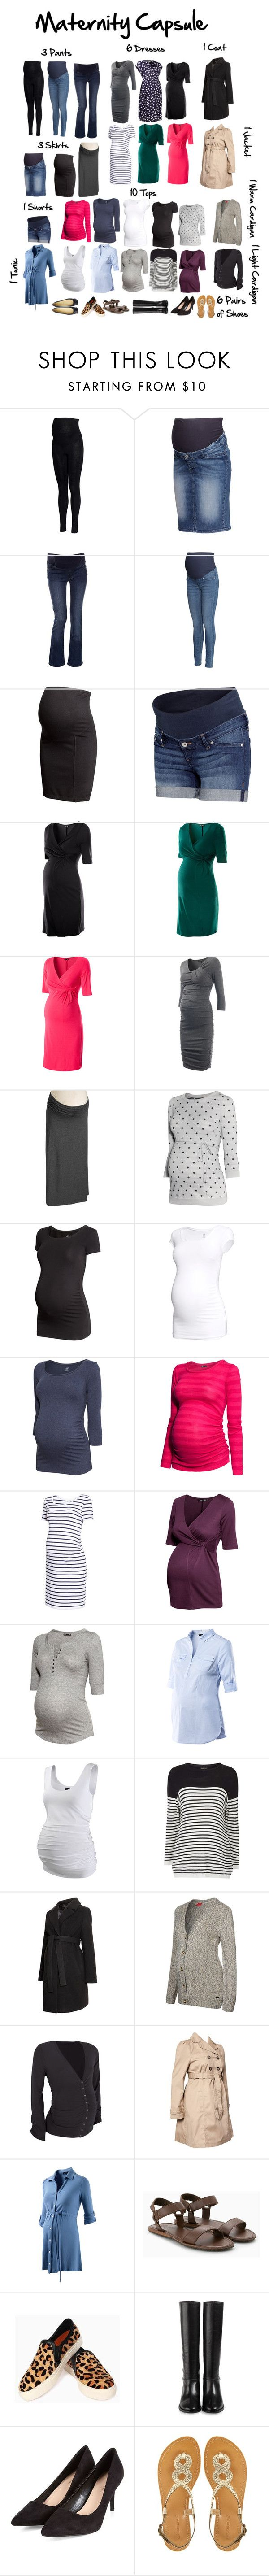 """Maternity Capsule Wardrobe"" by jensmith1228 ❤ liked on Polyvore featuring H&M, ESPRIT, Isabella Oliver, Old Navy, Topshop, Crave Maternity, Mama.licious, Christian Louboutin, MANGO and Cole Haan"